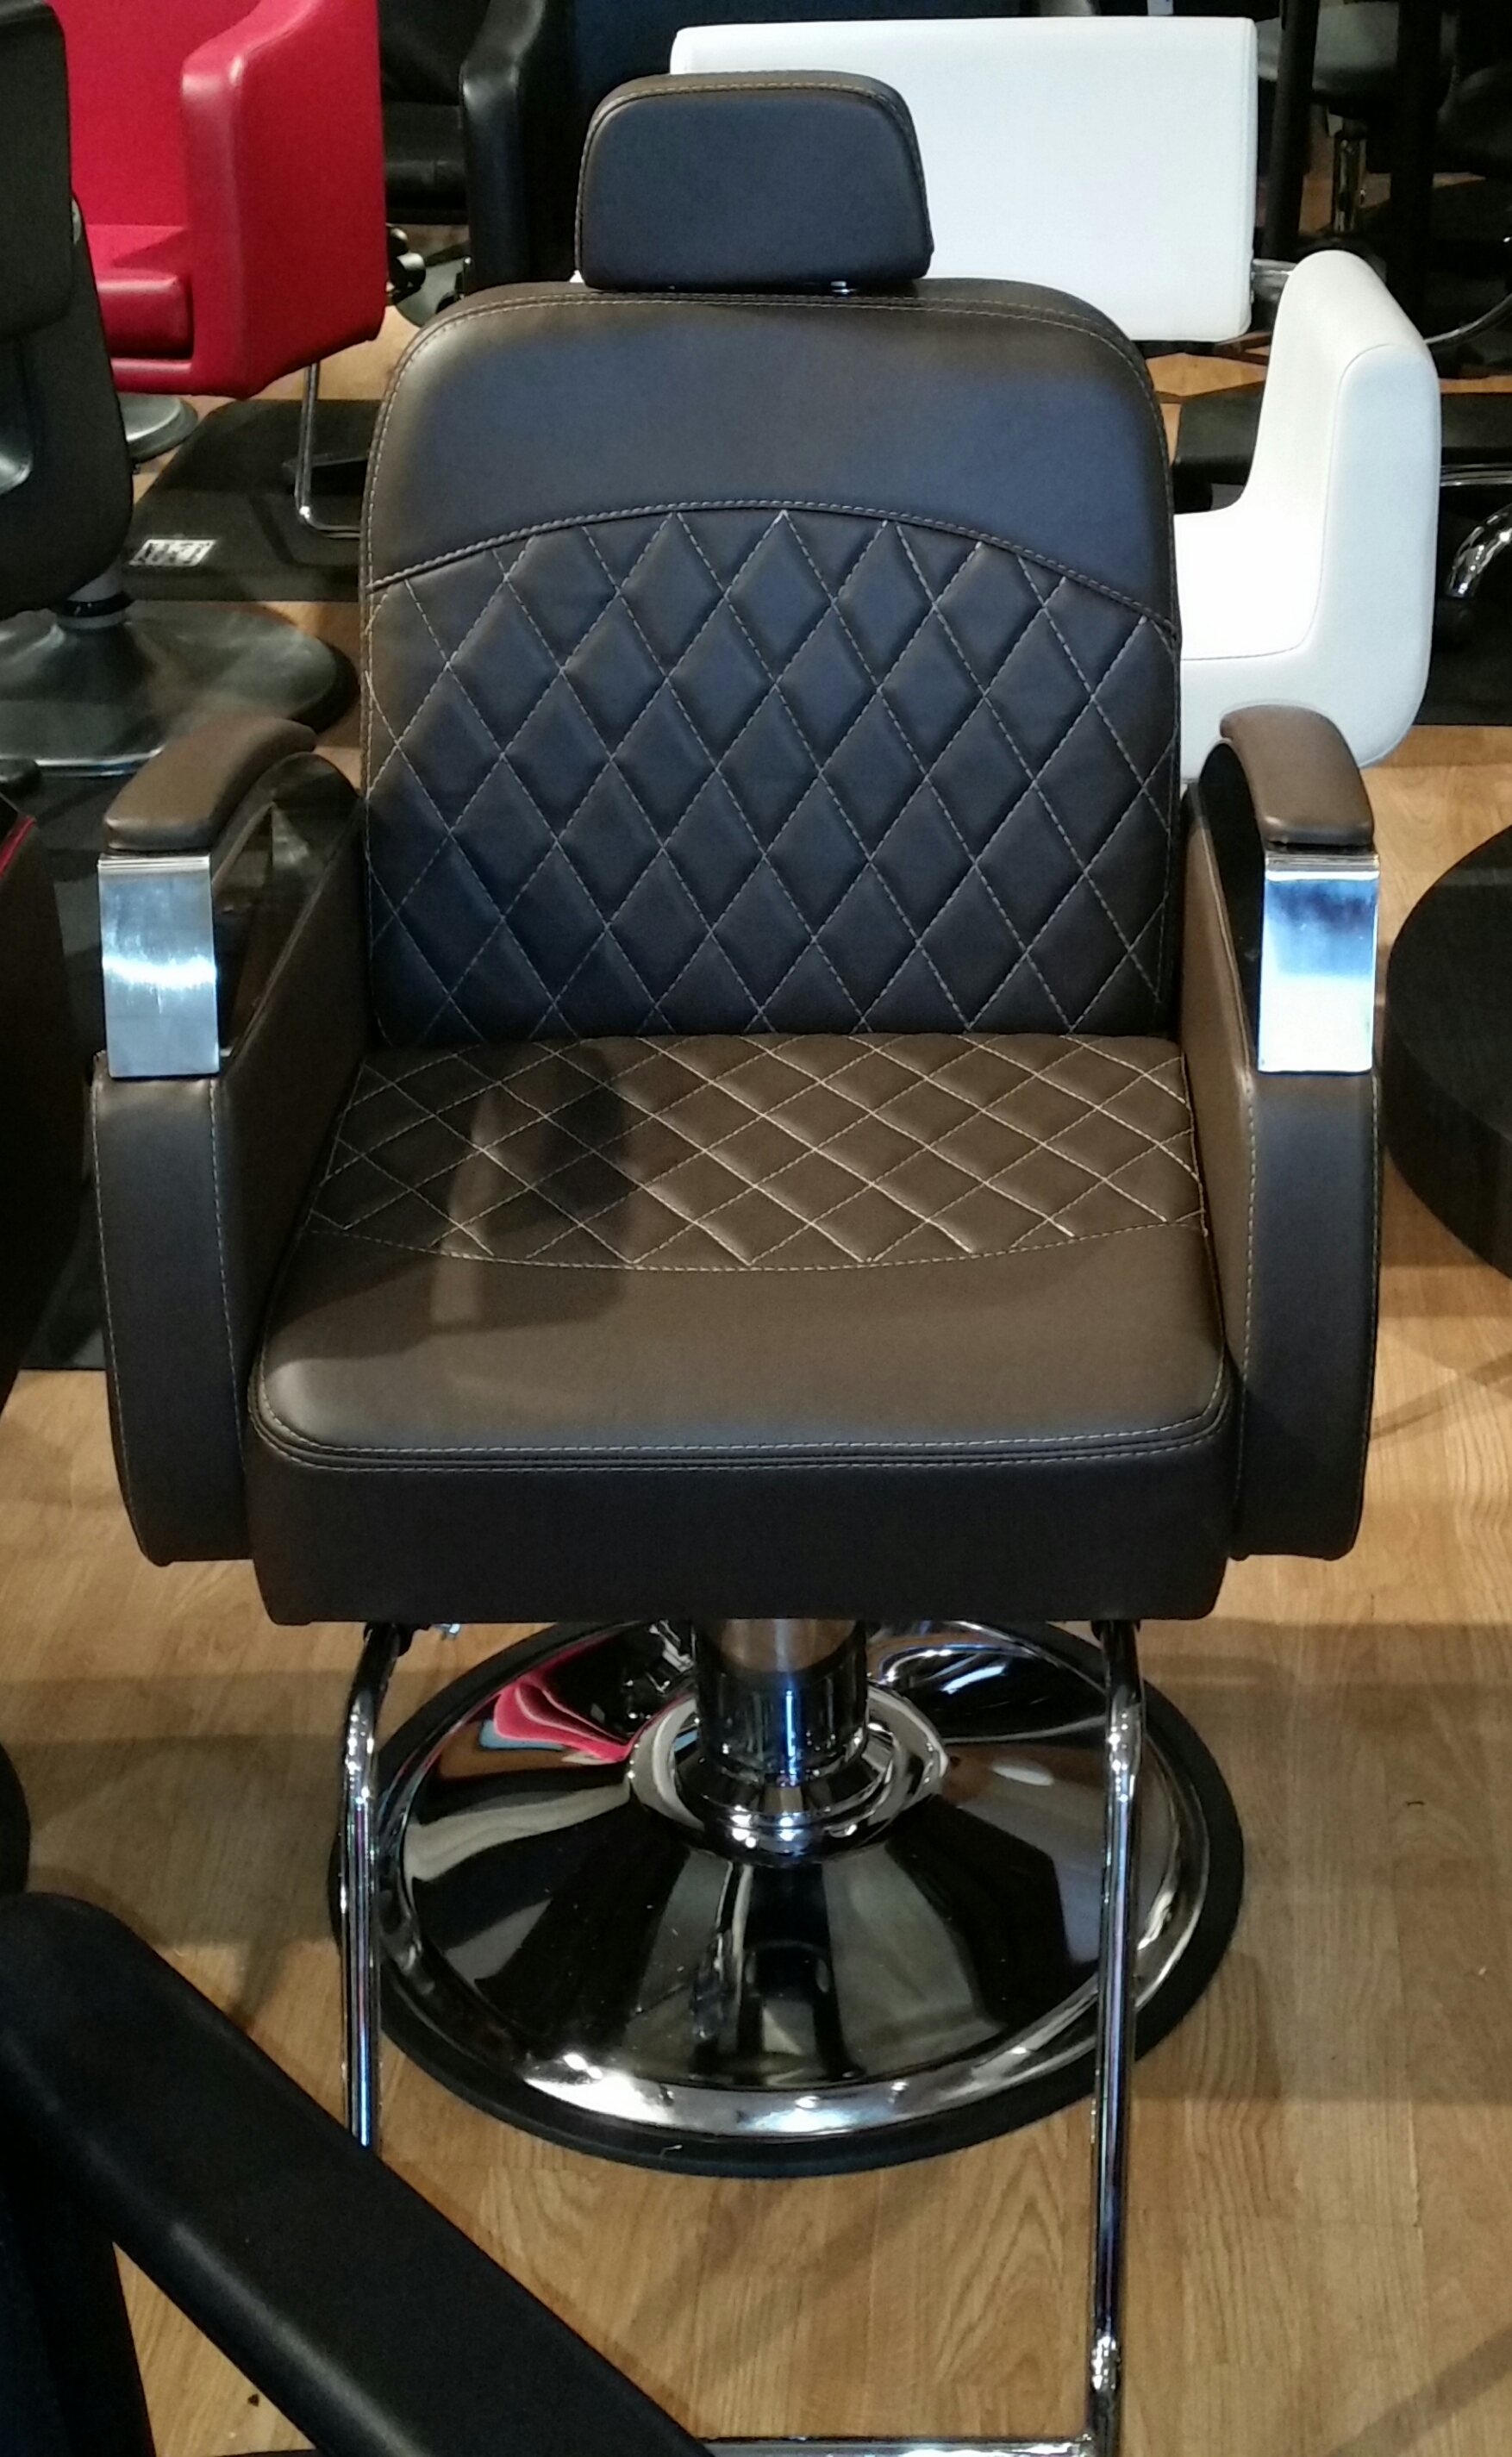 styling chairs for sale chair makeup vanity unique barber rtty1